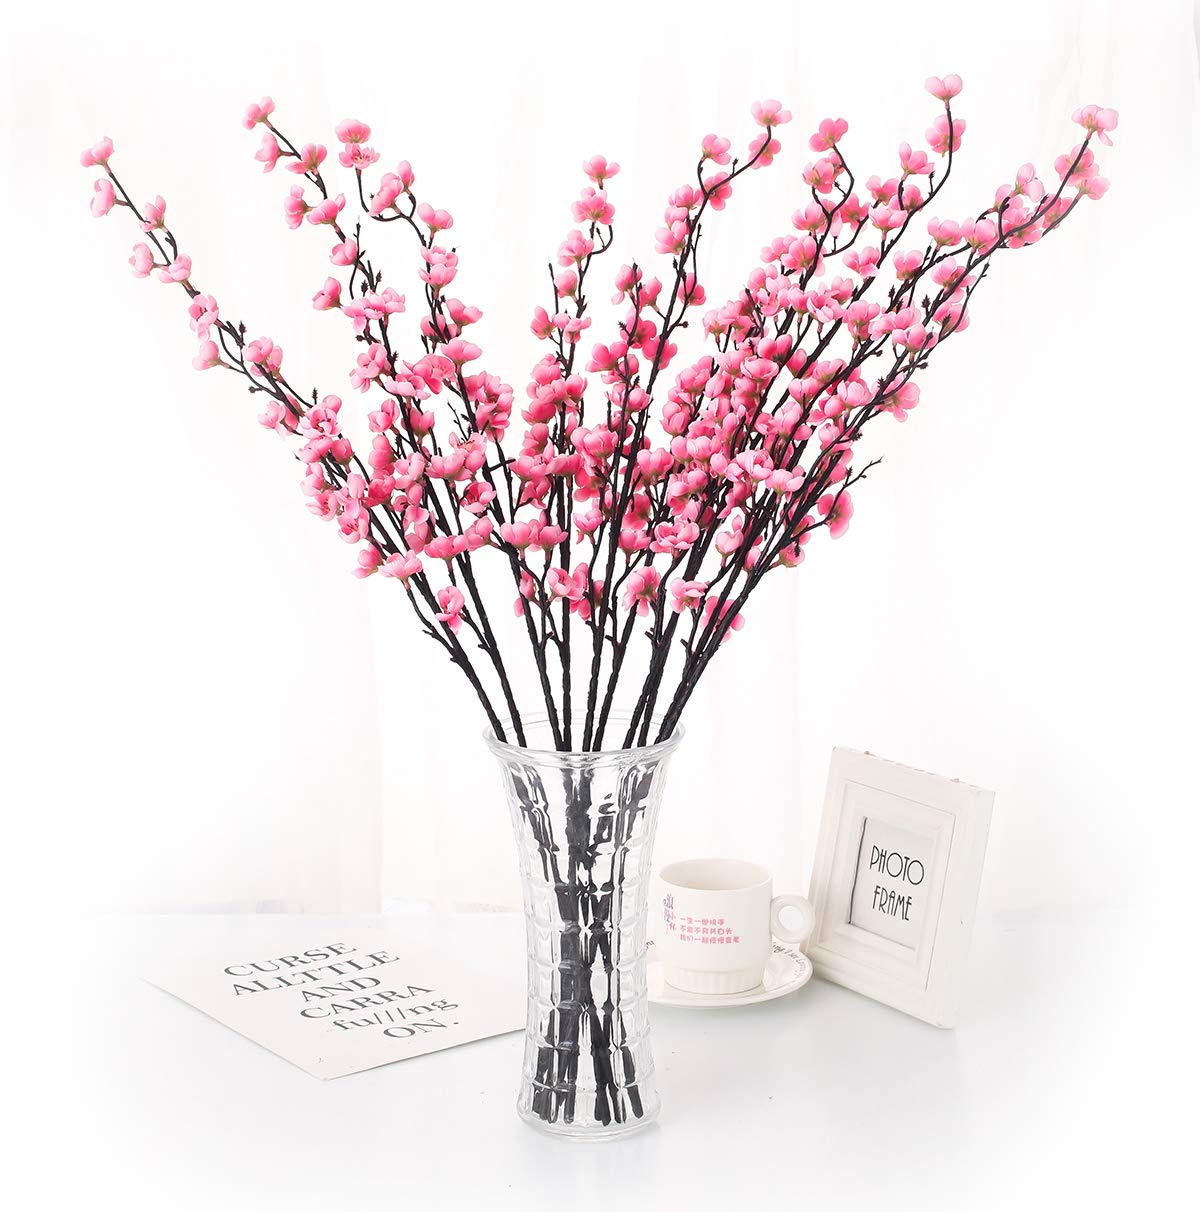 Charmly 5 Pcs Artificial Plum Blossom Fake Wintersweet Long Stem Plastic Flowers Home Hotel Office Wedding Party Garden Decor 27.5'' High Pink